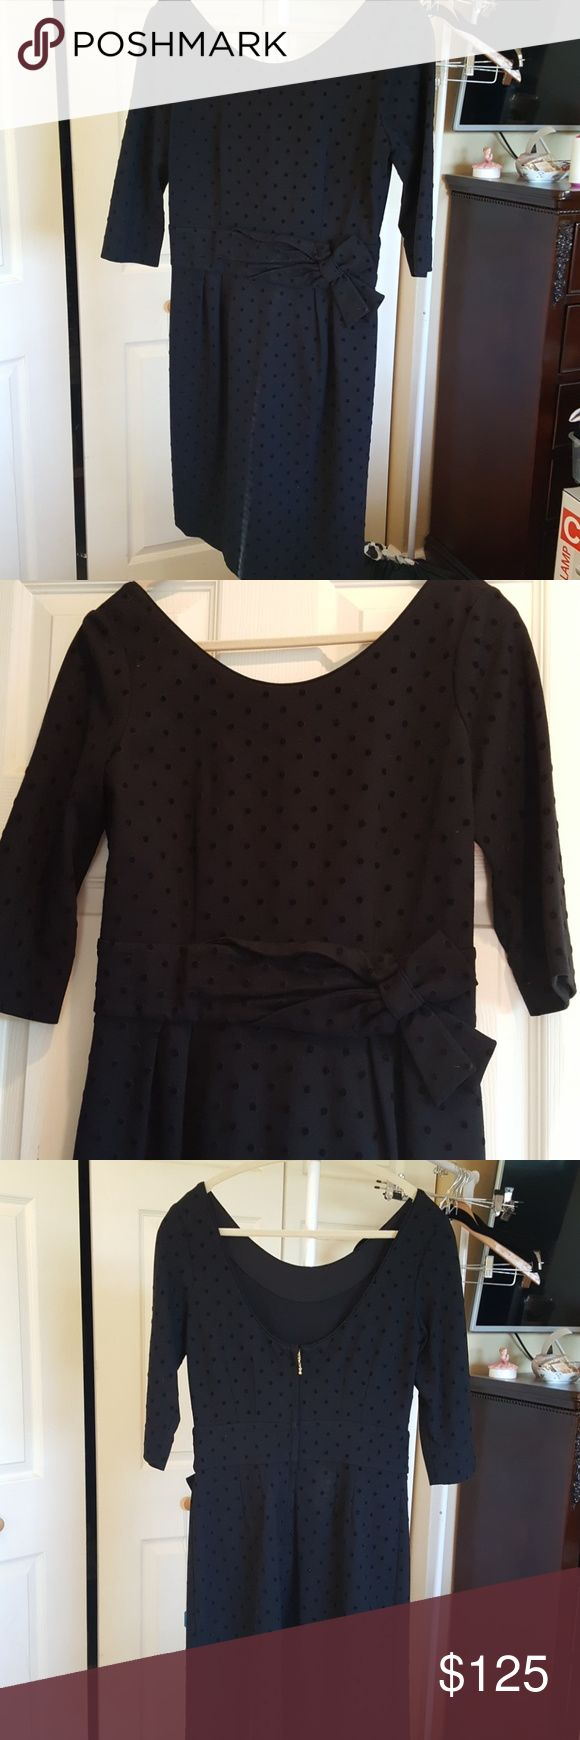 Kate Spade polka dotted elegant cocktail dress. Wonderfully soft fabric..3/4 sleeves 18 from shoulder to cuff.  Cute unusual zipper detailing..stretch to fabric. Measures 15 across waist..about 18 across bust..shoulder to hem 38..cute bow at front.  Great for upcoming holidays!! kate spade Dresses